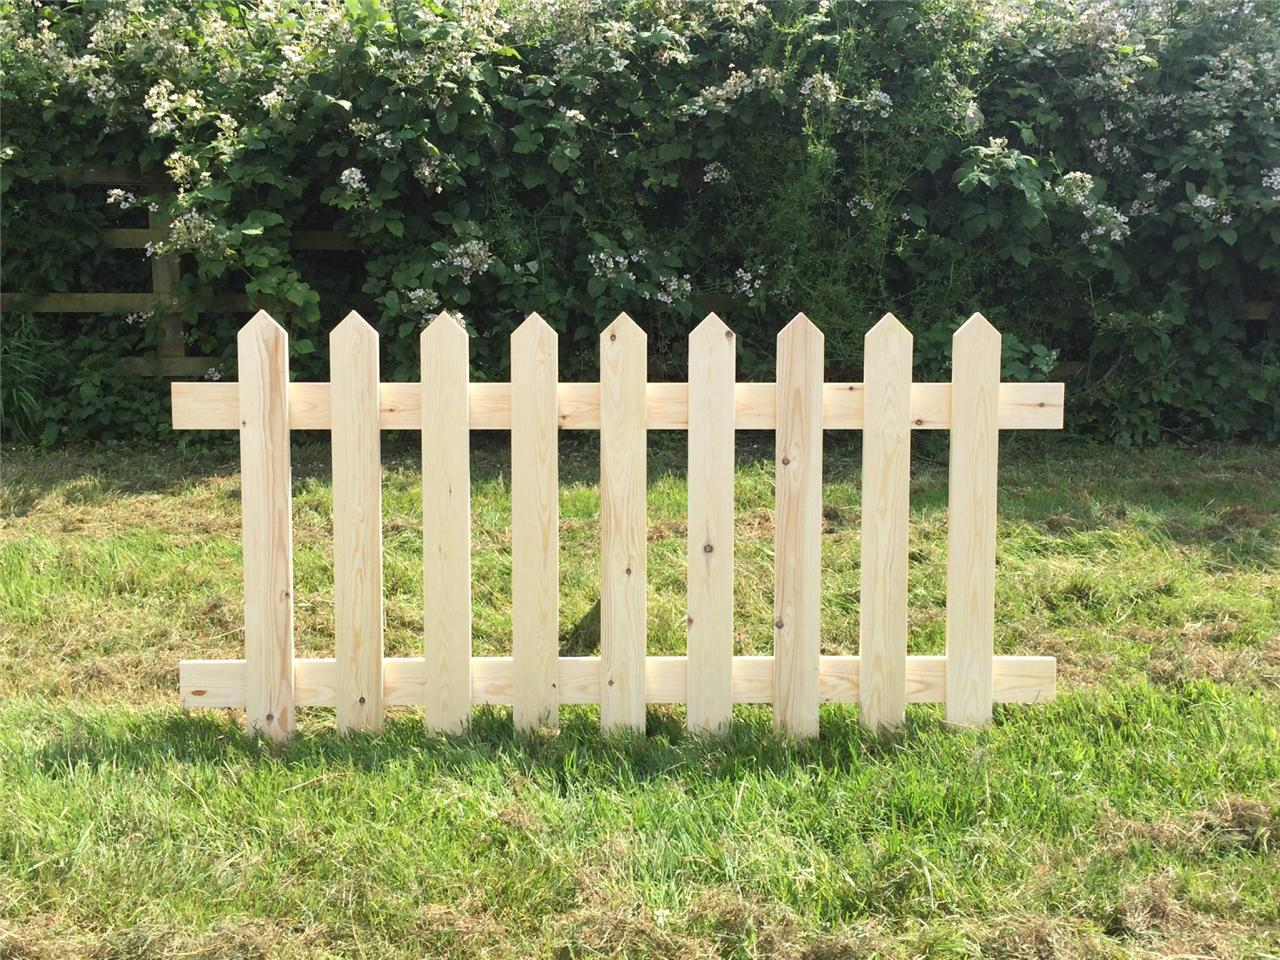 Marvelous photograph of Picket fence panel panels smooth redwood treated hand made in the UK  with #927B39 color and 1280x960 pixels